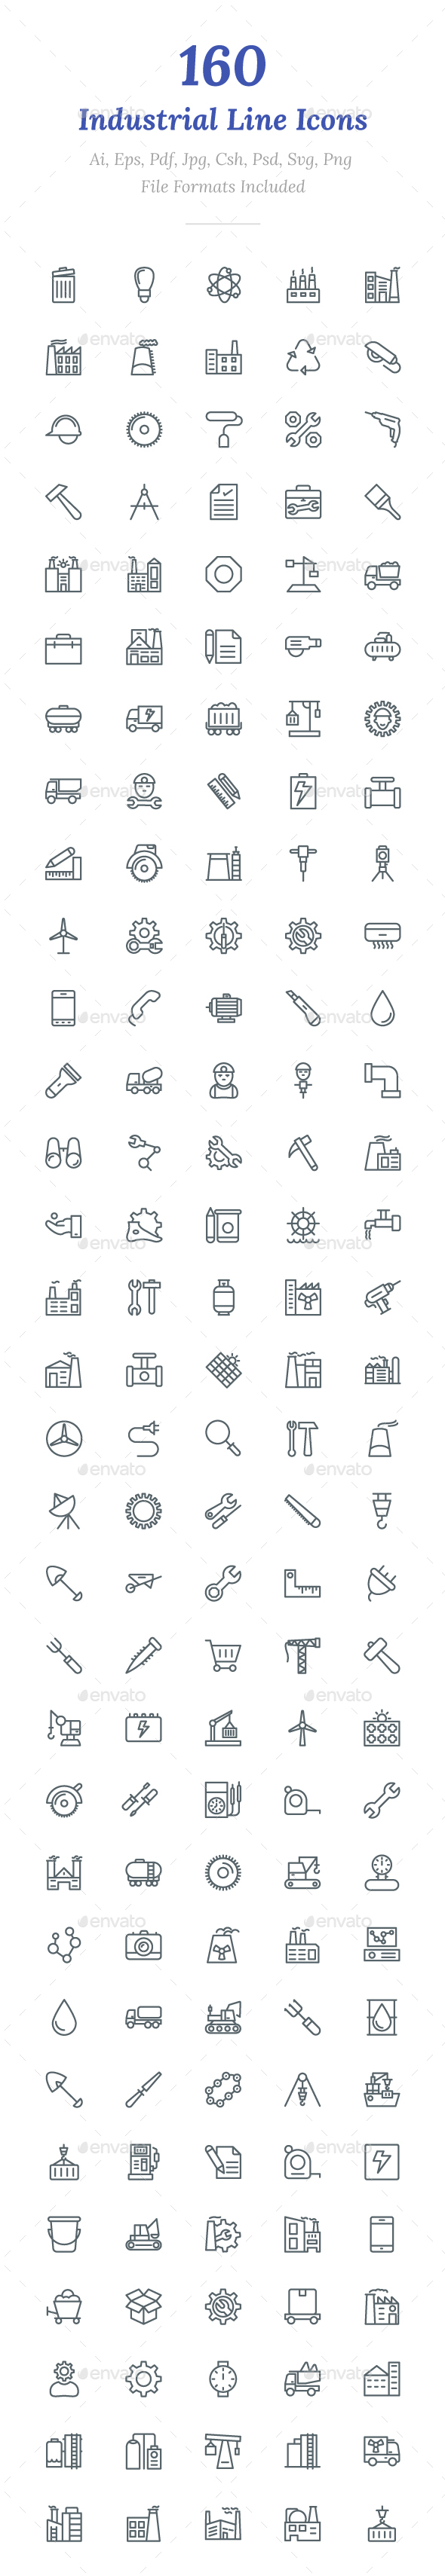 GraphicRiver 160 Industrial Line Icons 20704171